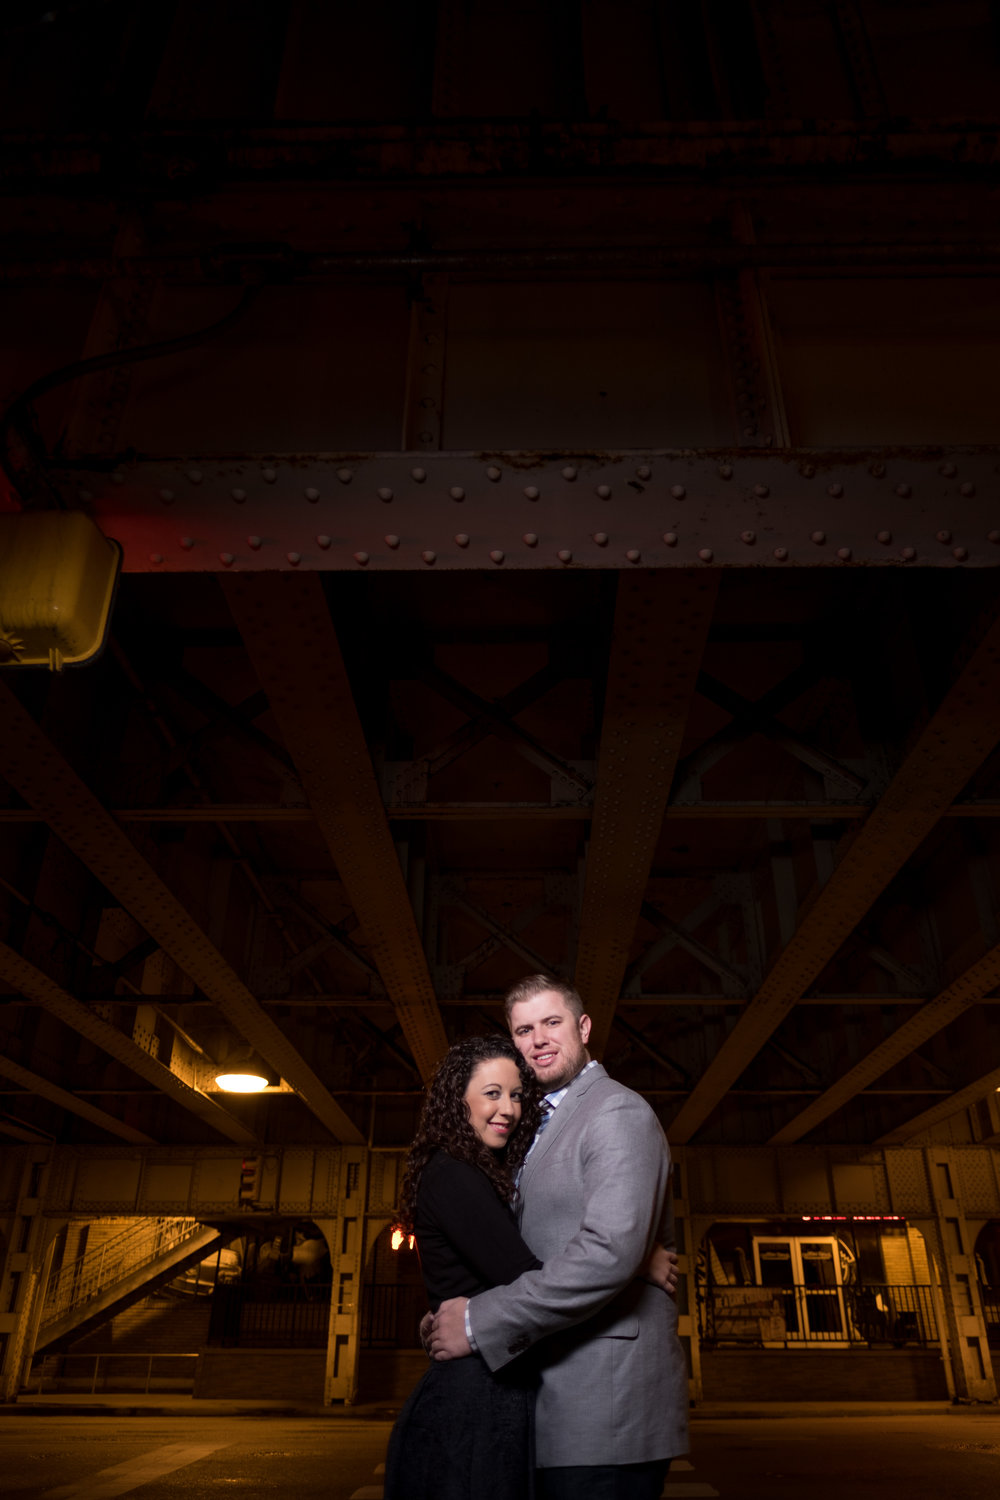 Downtown-Indianapolis-night-engagement-pictures-13.jpg